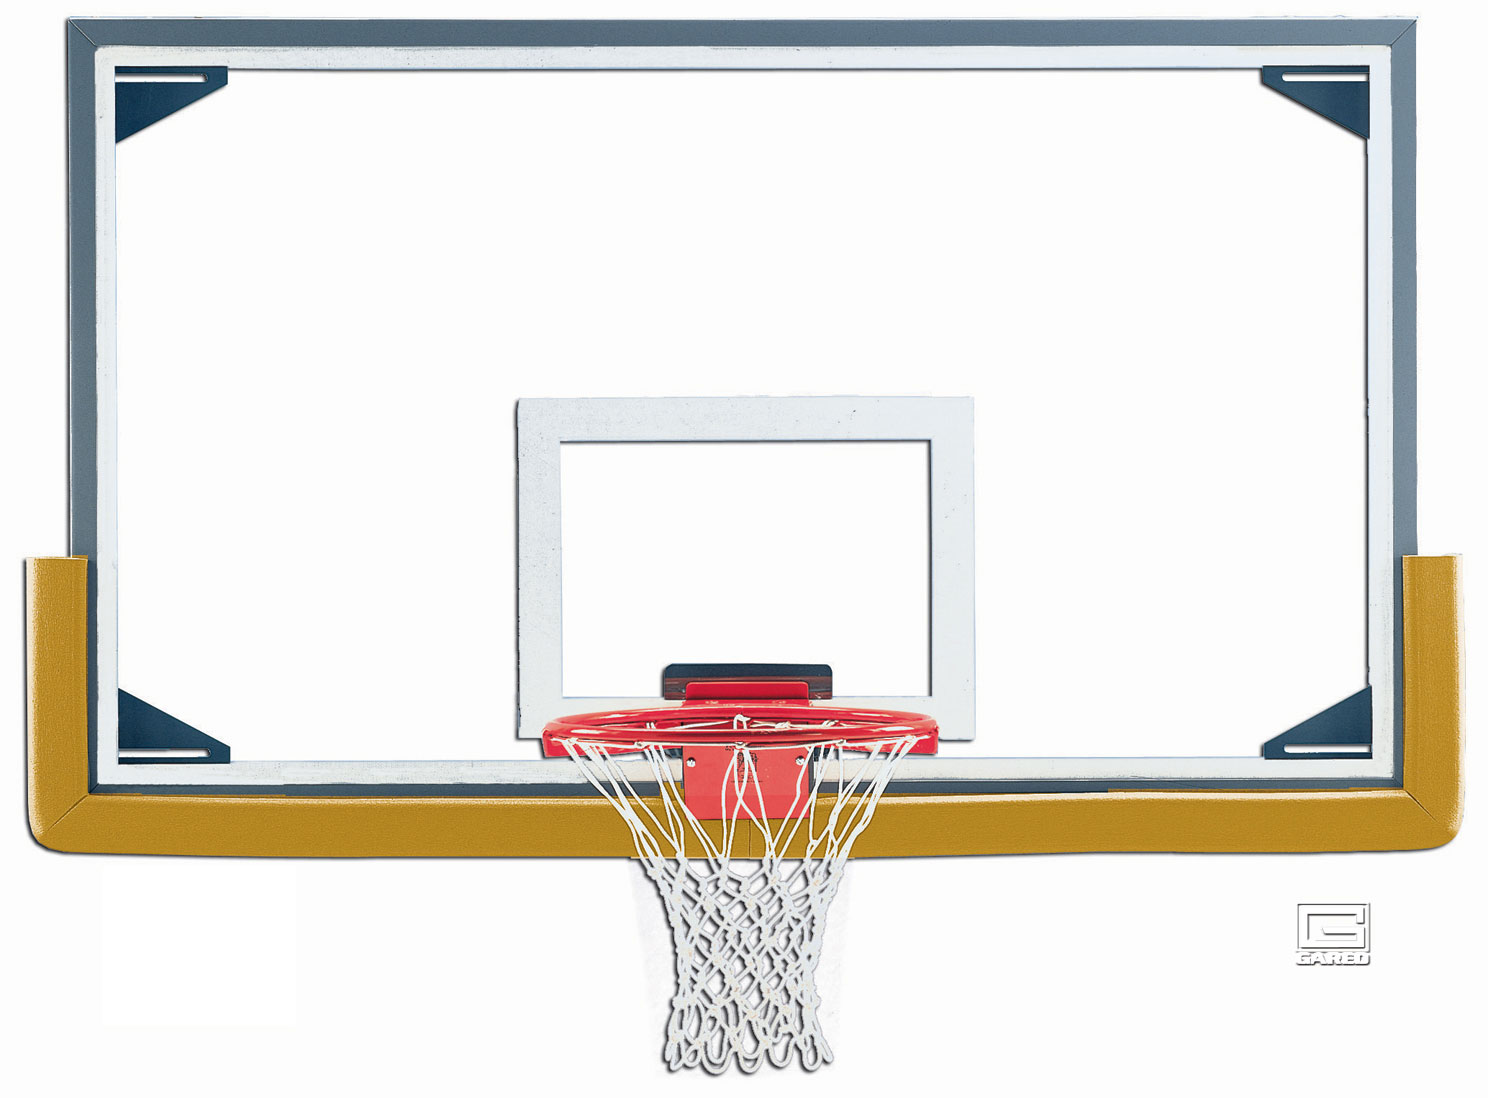 Gared LXP4200 Indoor Backboard Great Prices Indoor Backboards Residential and mercial